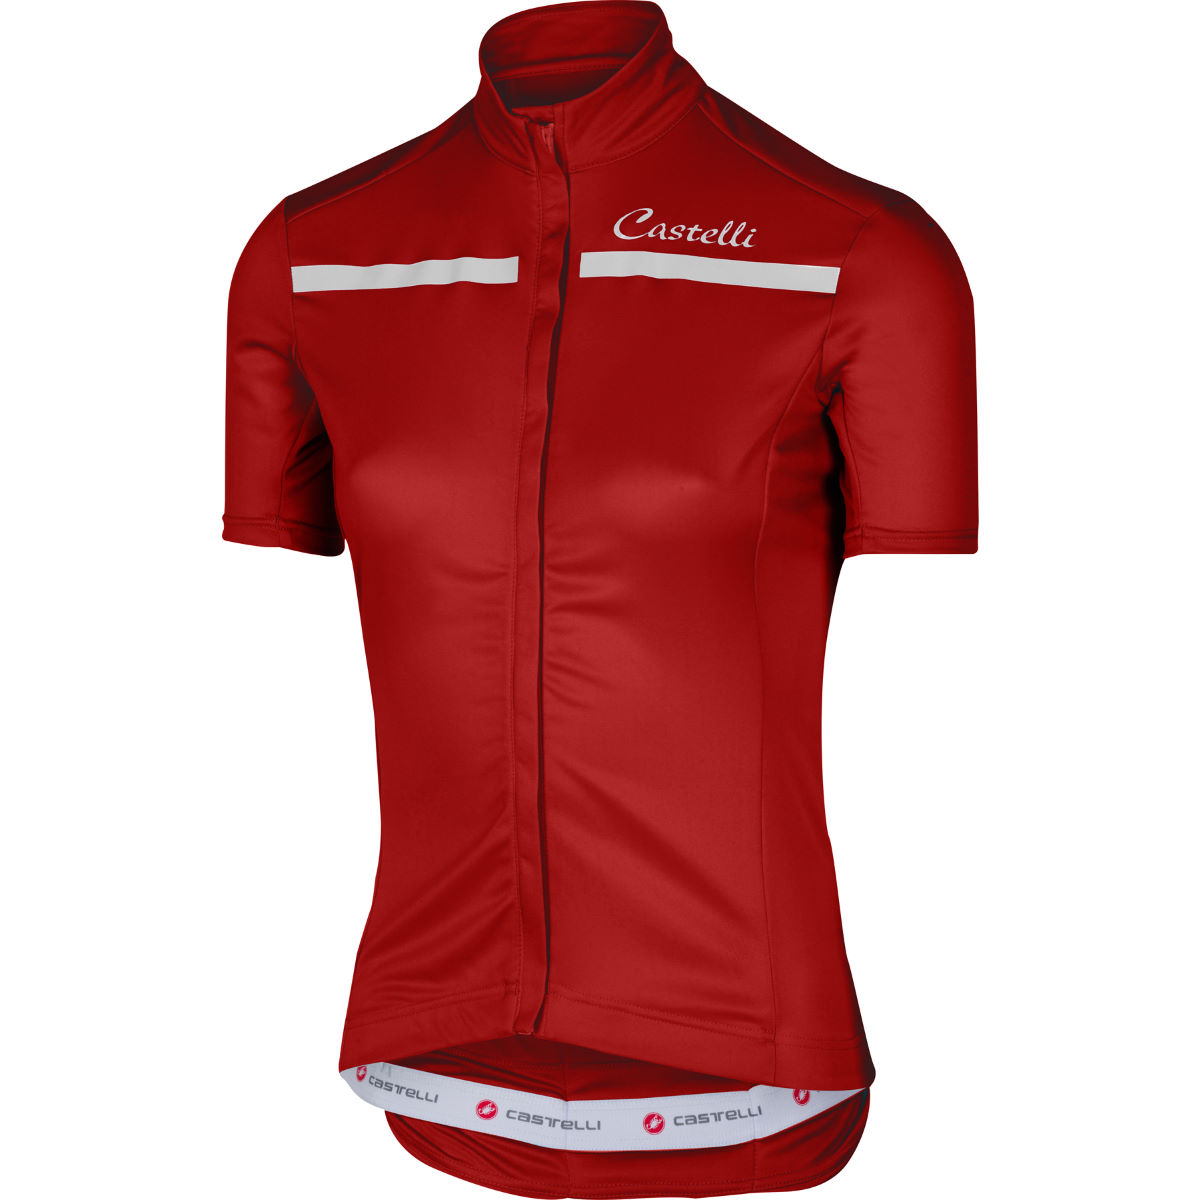 Maillot Femme Castelli Imprevisto - XS Rouge/Blanc Maillots